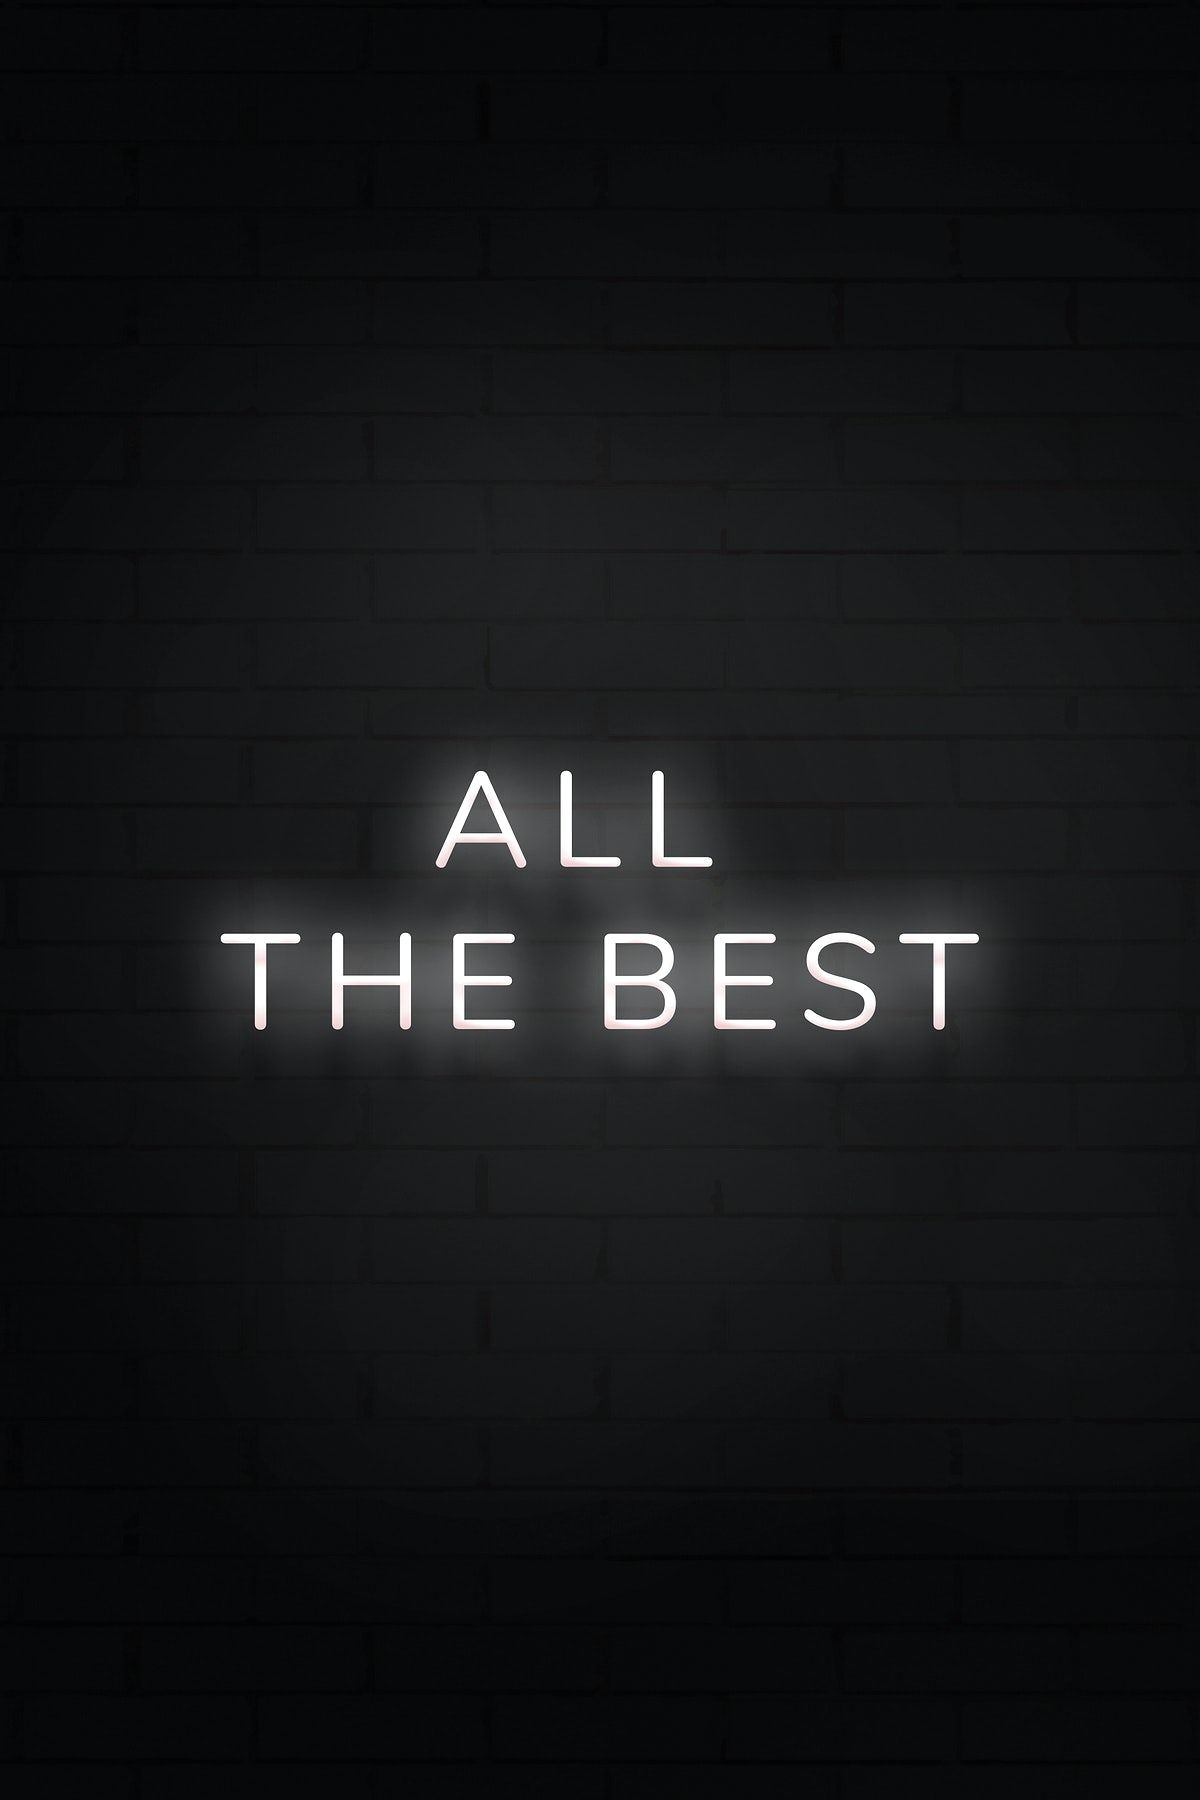 All The Best Neon White Text On Black Background Free Image By Rawpixel Com Black And White Photo Wall Black Aesthetic Wallpaper Black And White Aesthetic